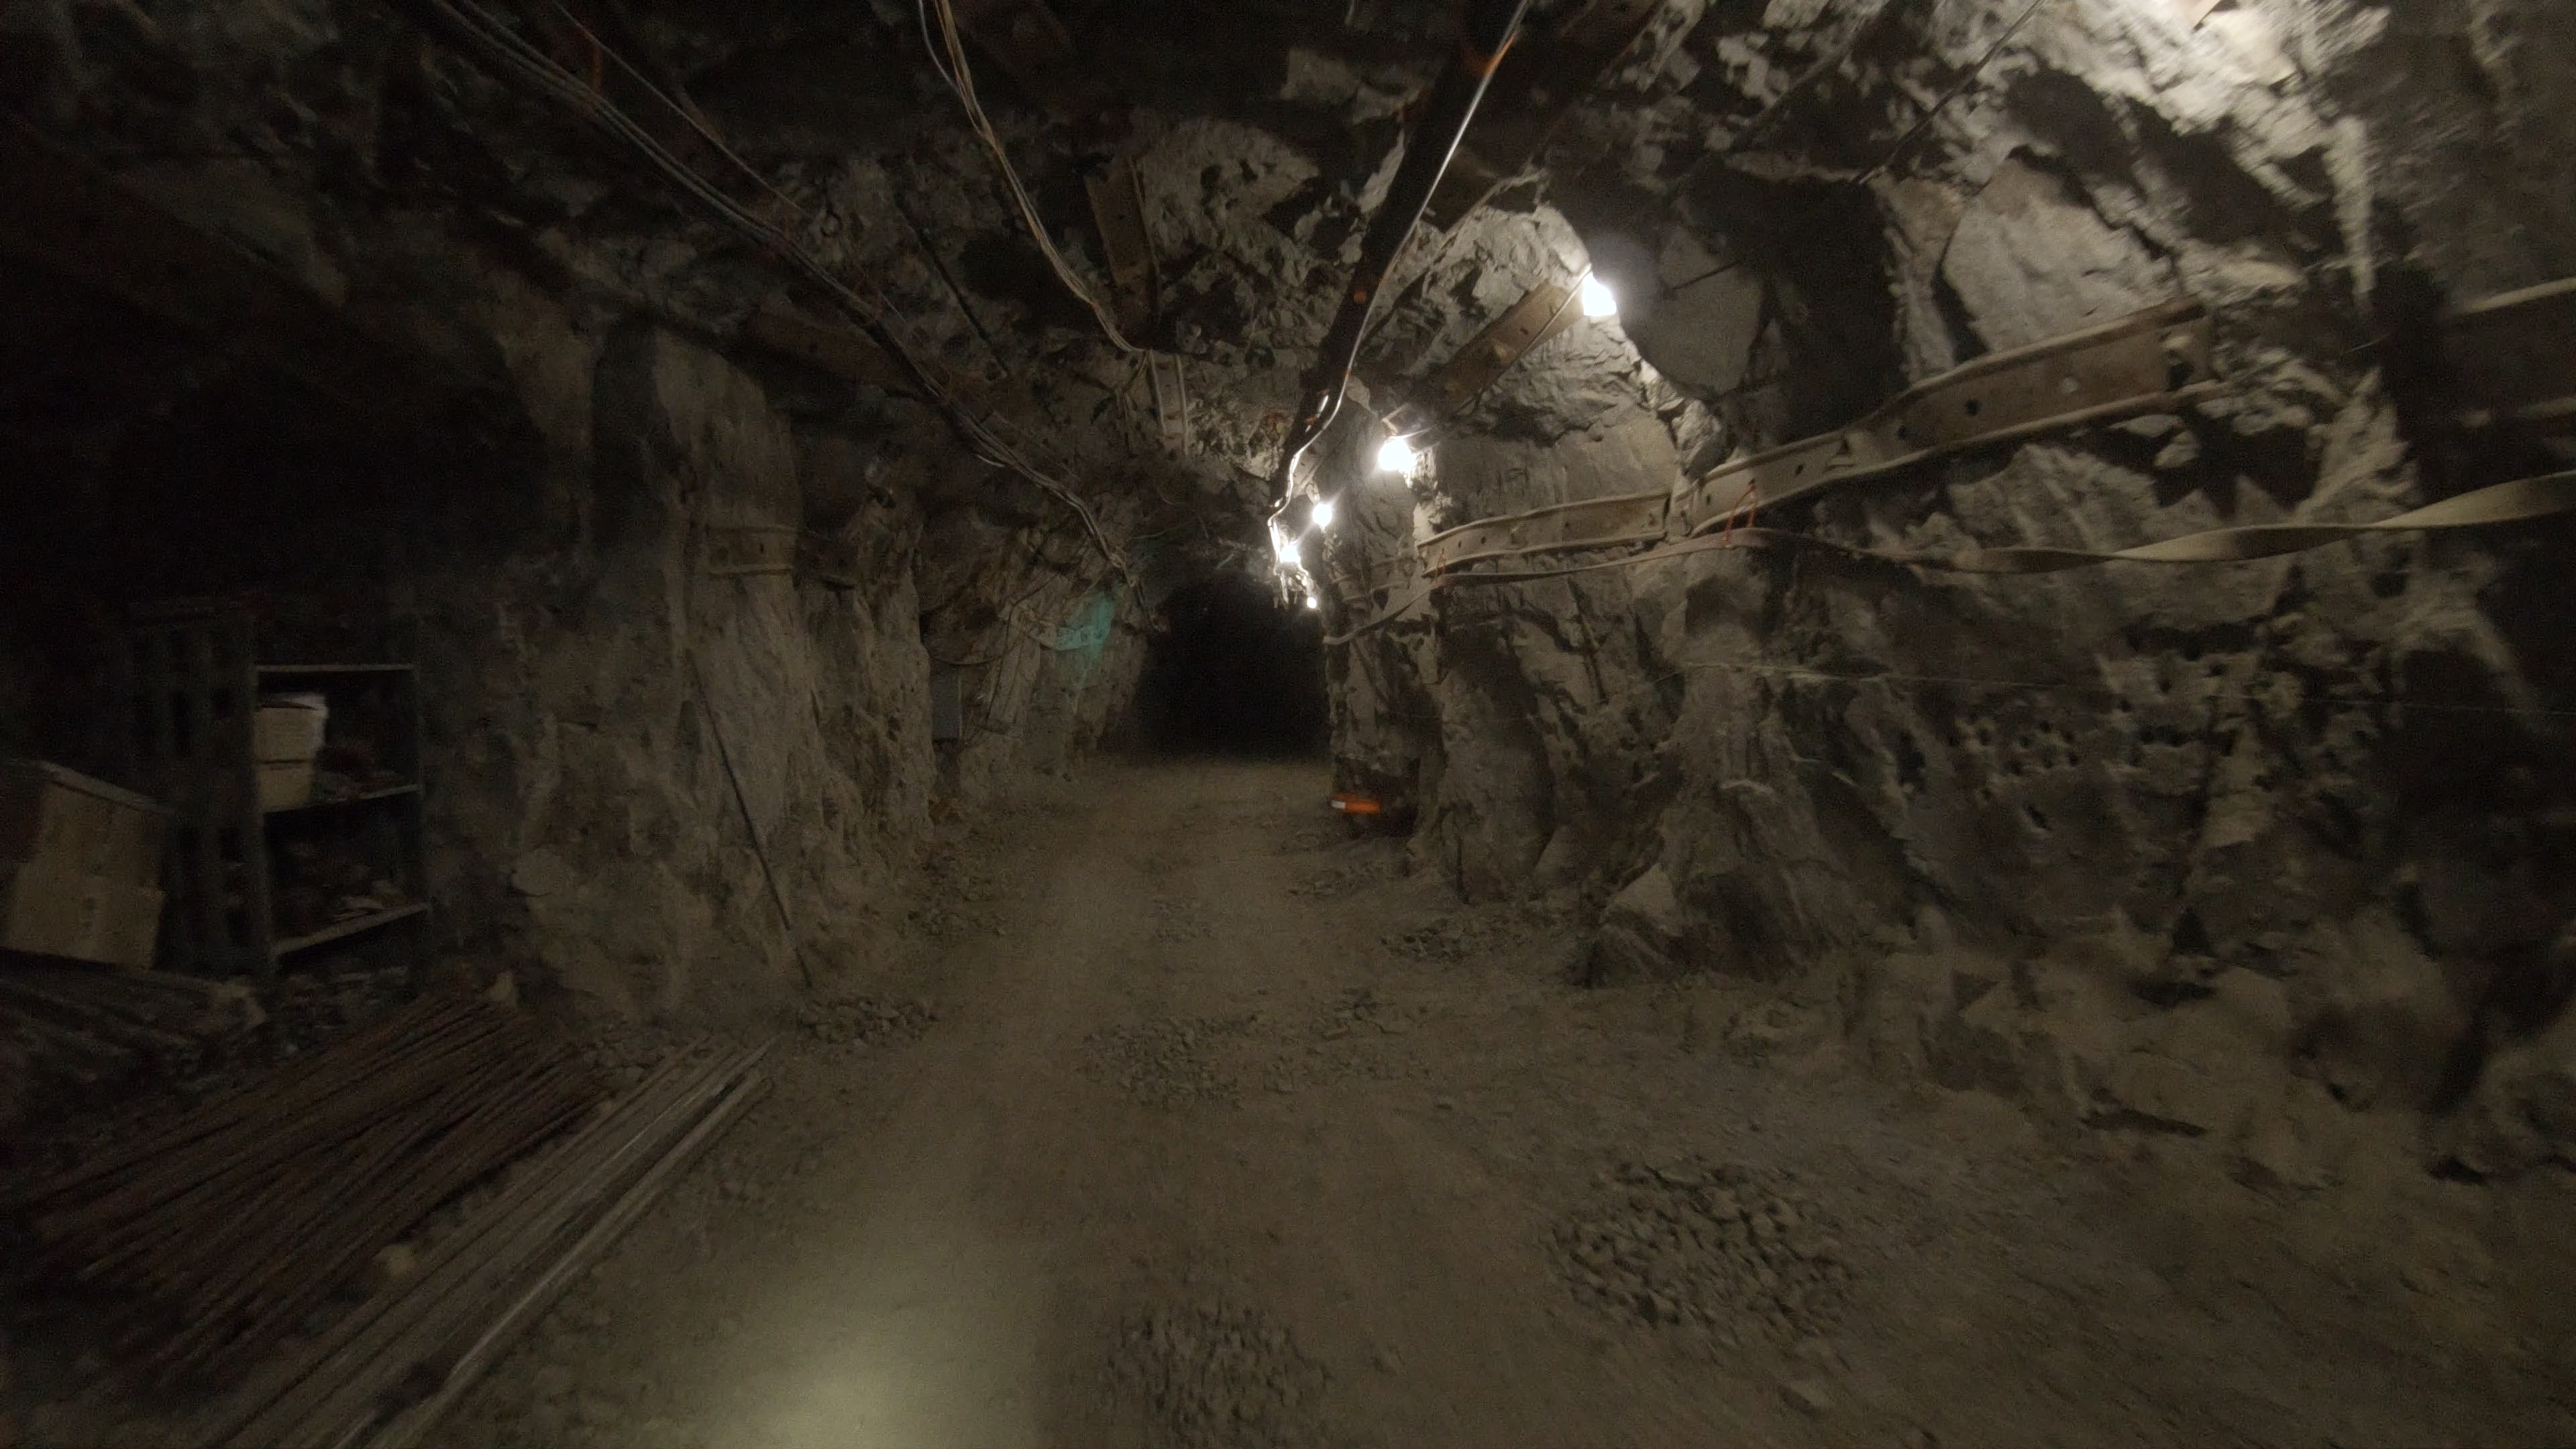 A passage at Edgar Experimental Mine in Idaho Springs, Colorado, where the SubT Integration Exercise took place in April 2019.